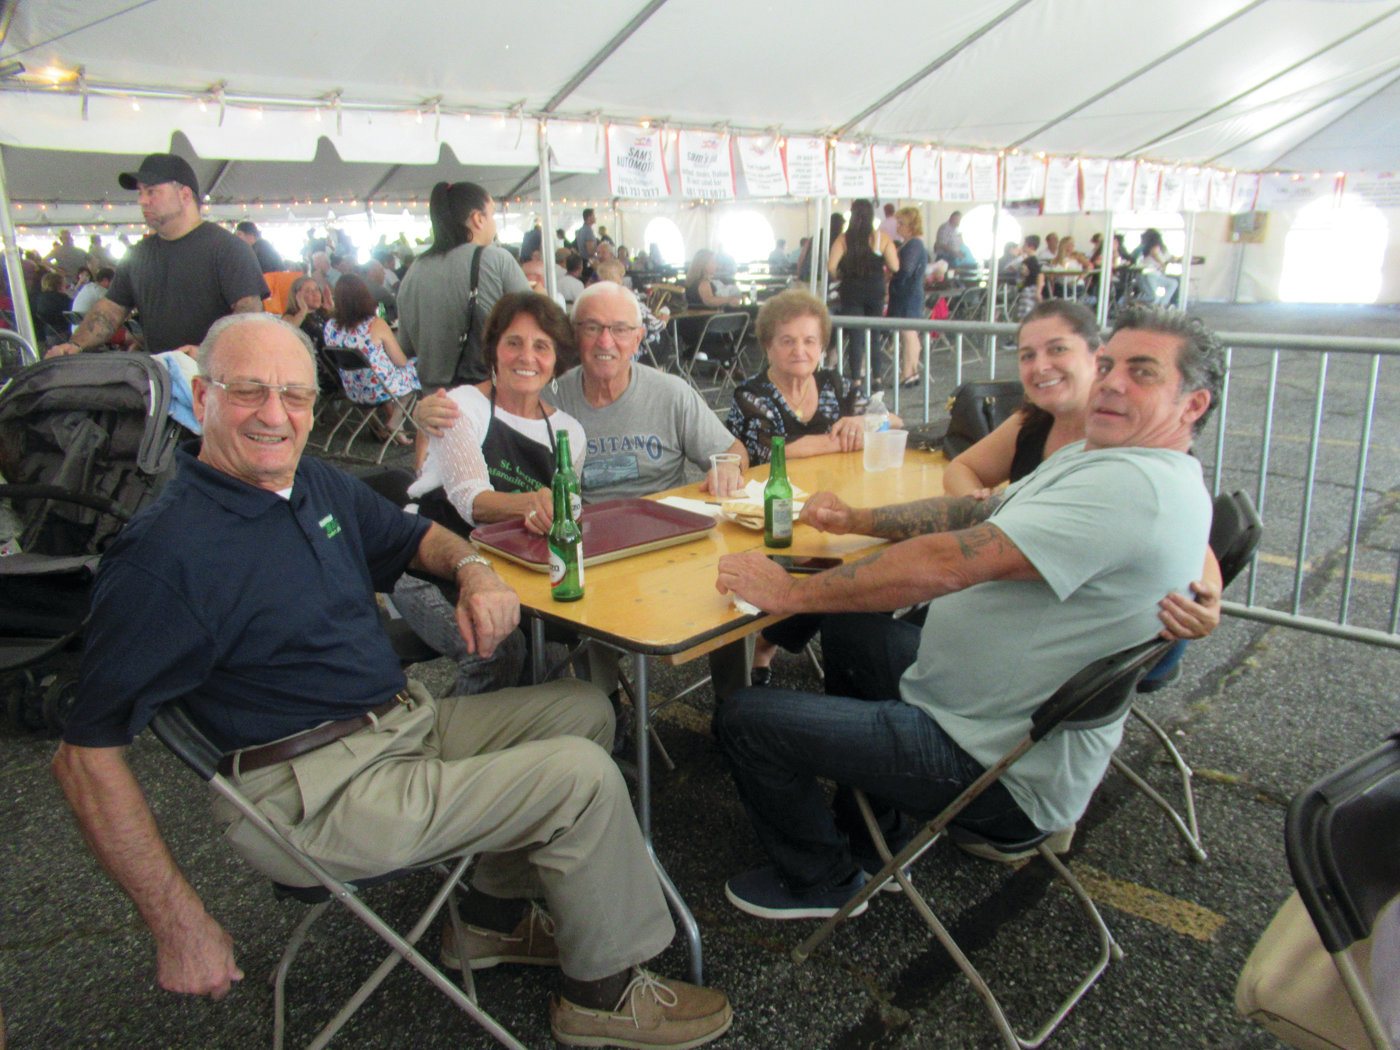 FESTIVAL FOLK: Marco and Rose D'Arezzo, Ed and Rosanne Cabral and Romeo and Janice Moretti were among the many people who took in last weekend's festivities.